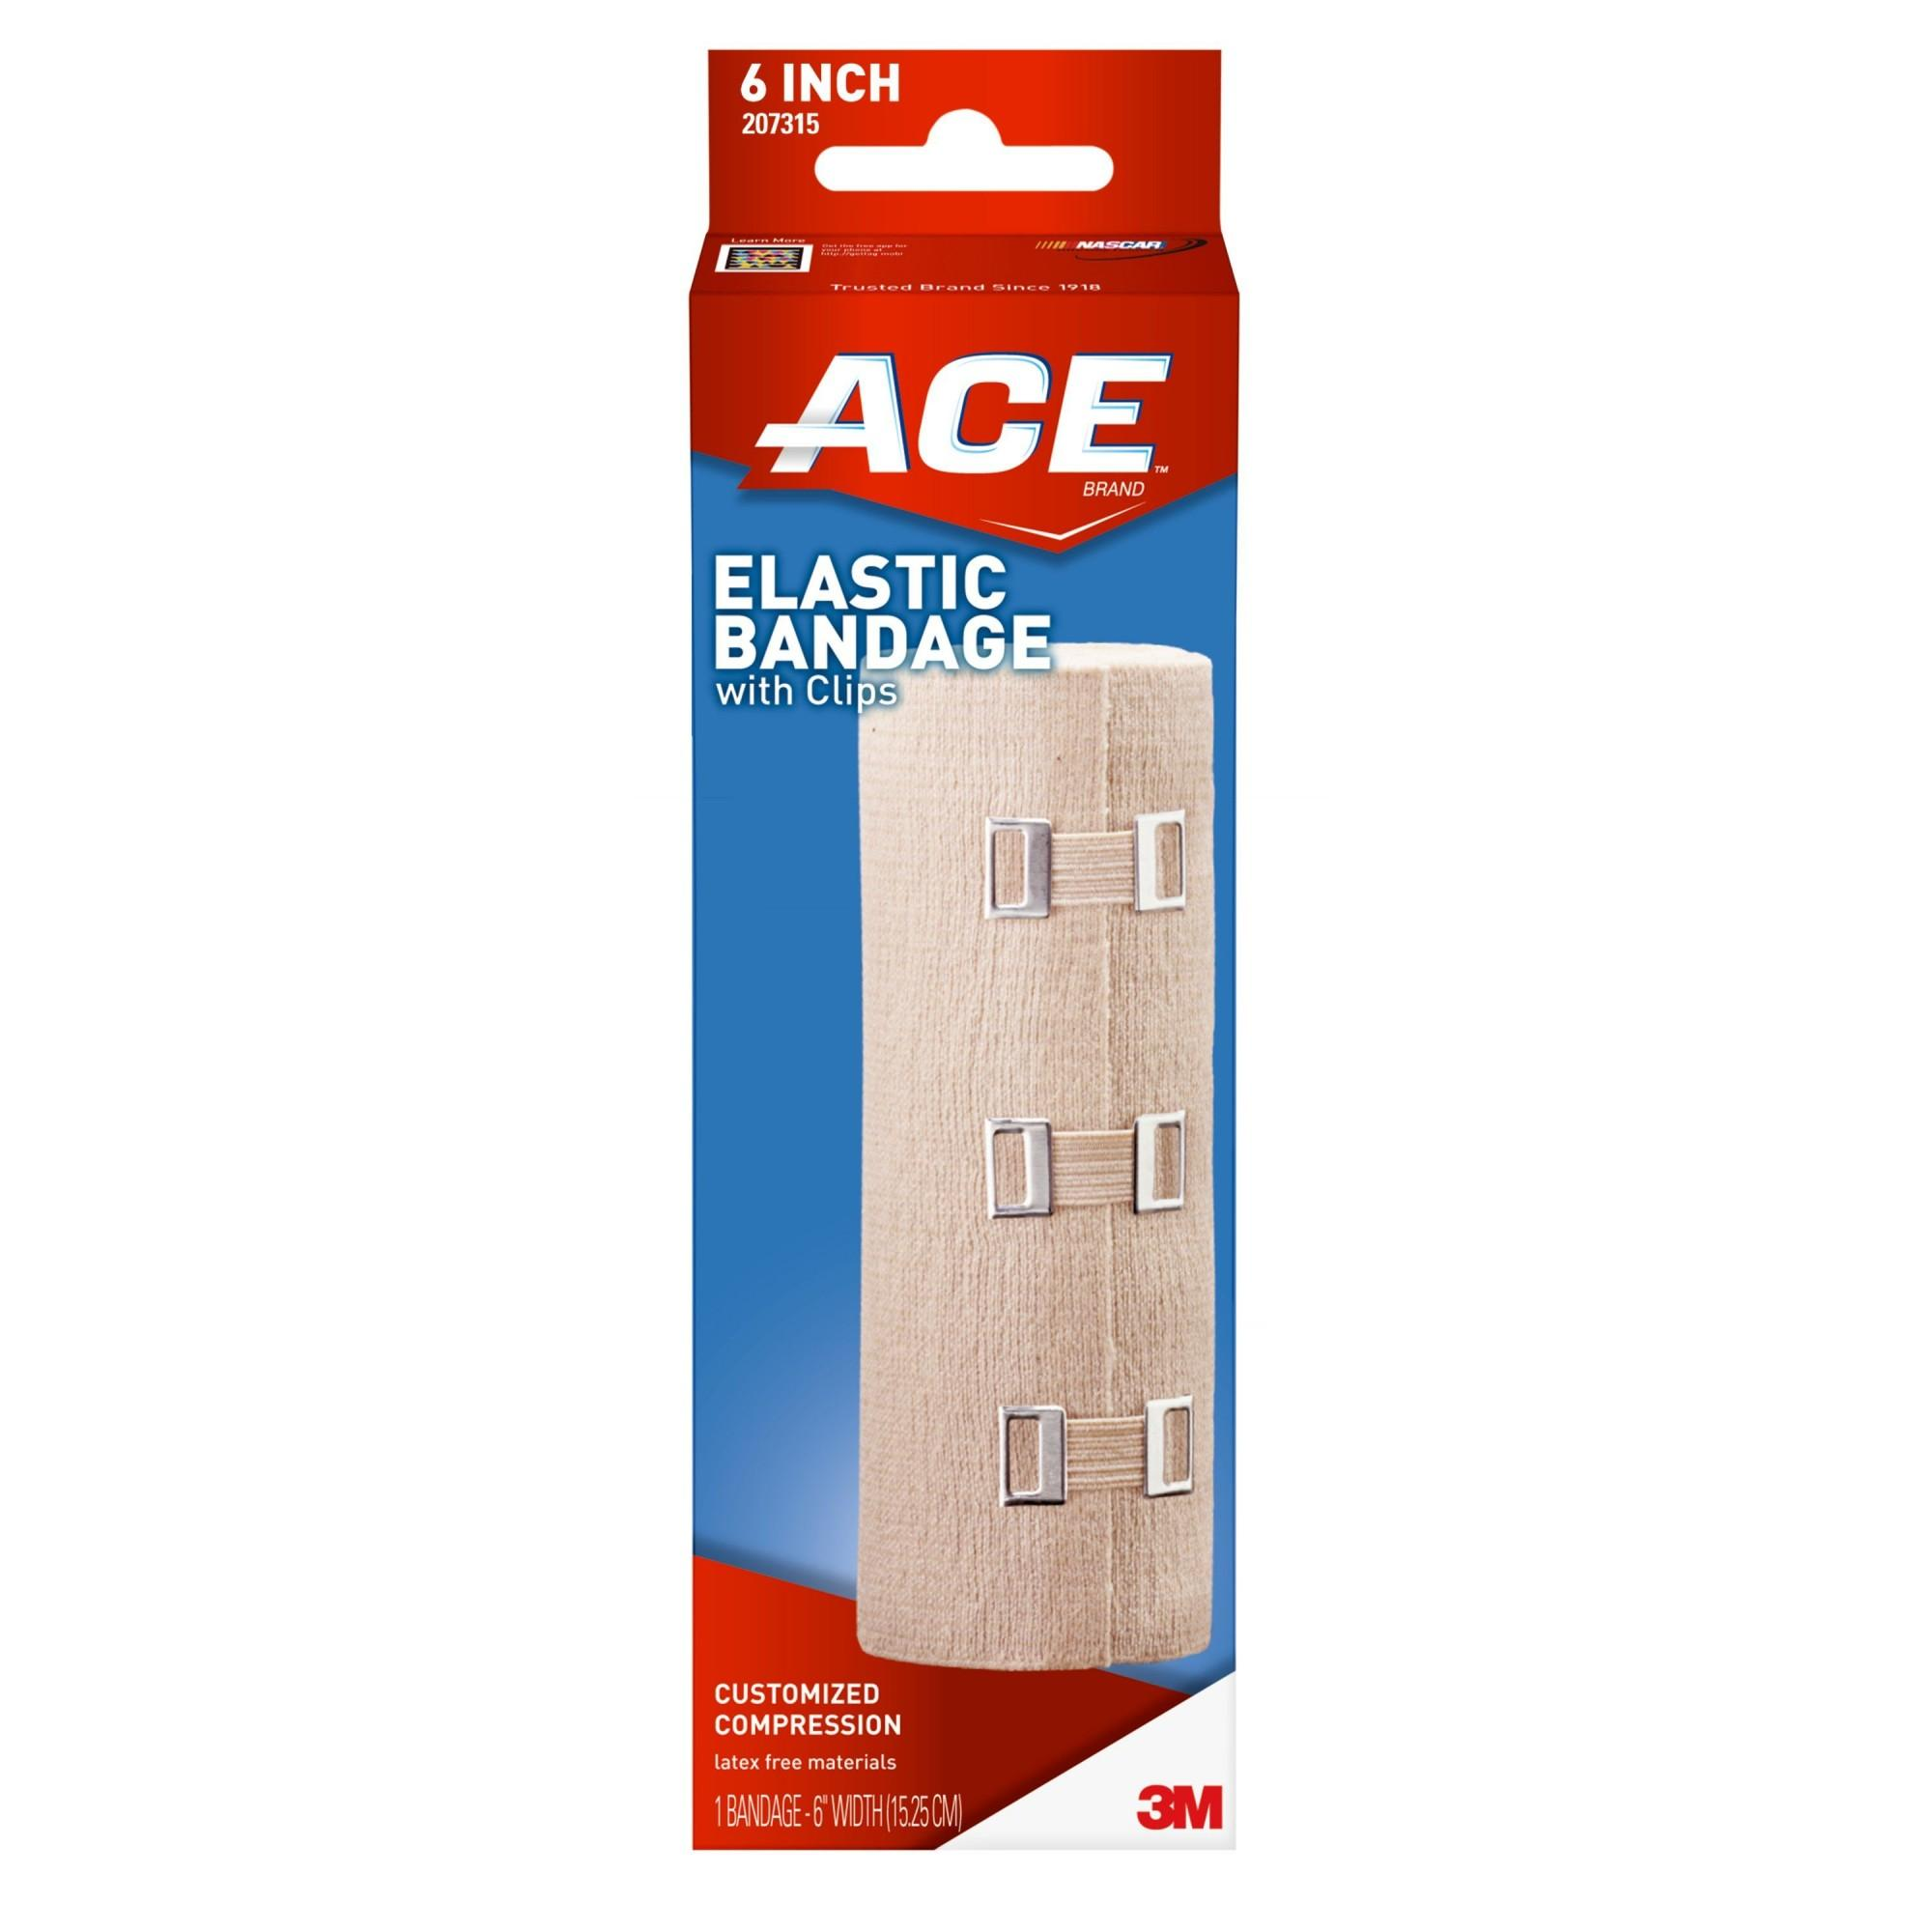 ACE Brand Elastic Bandage with Clips, 6 in., Beige, 1/Pack